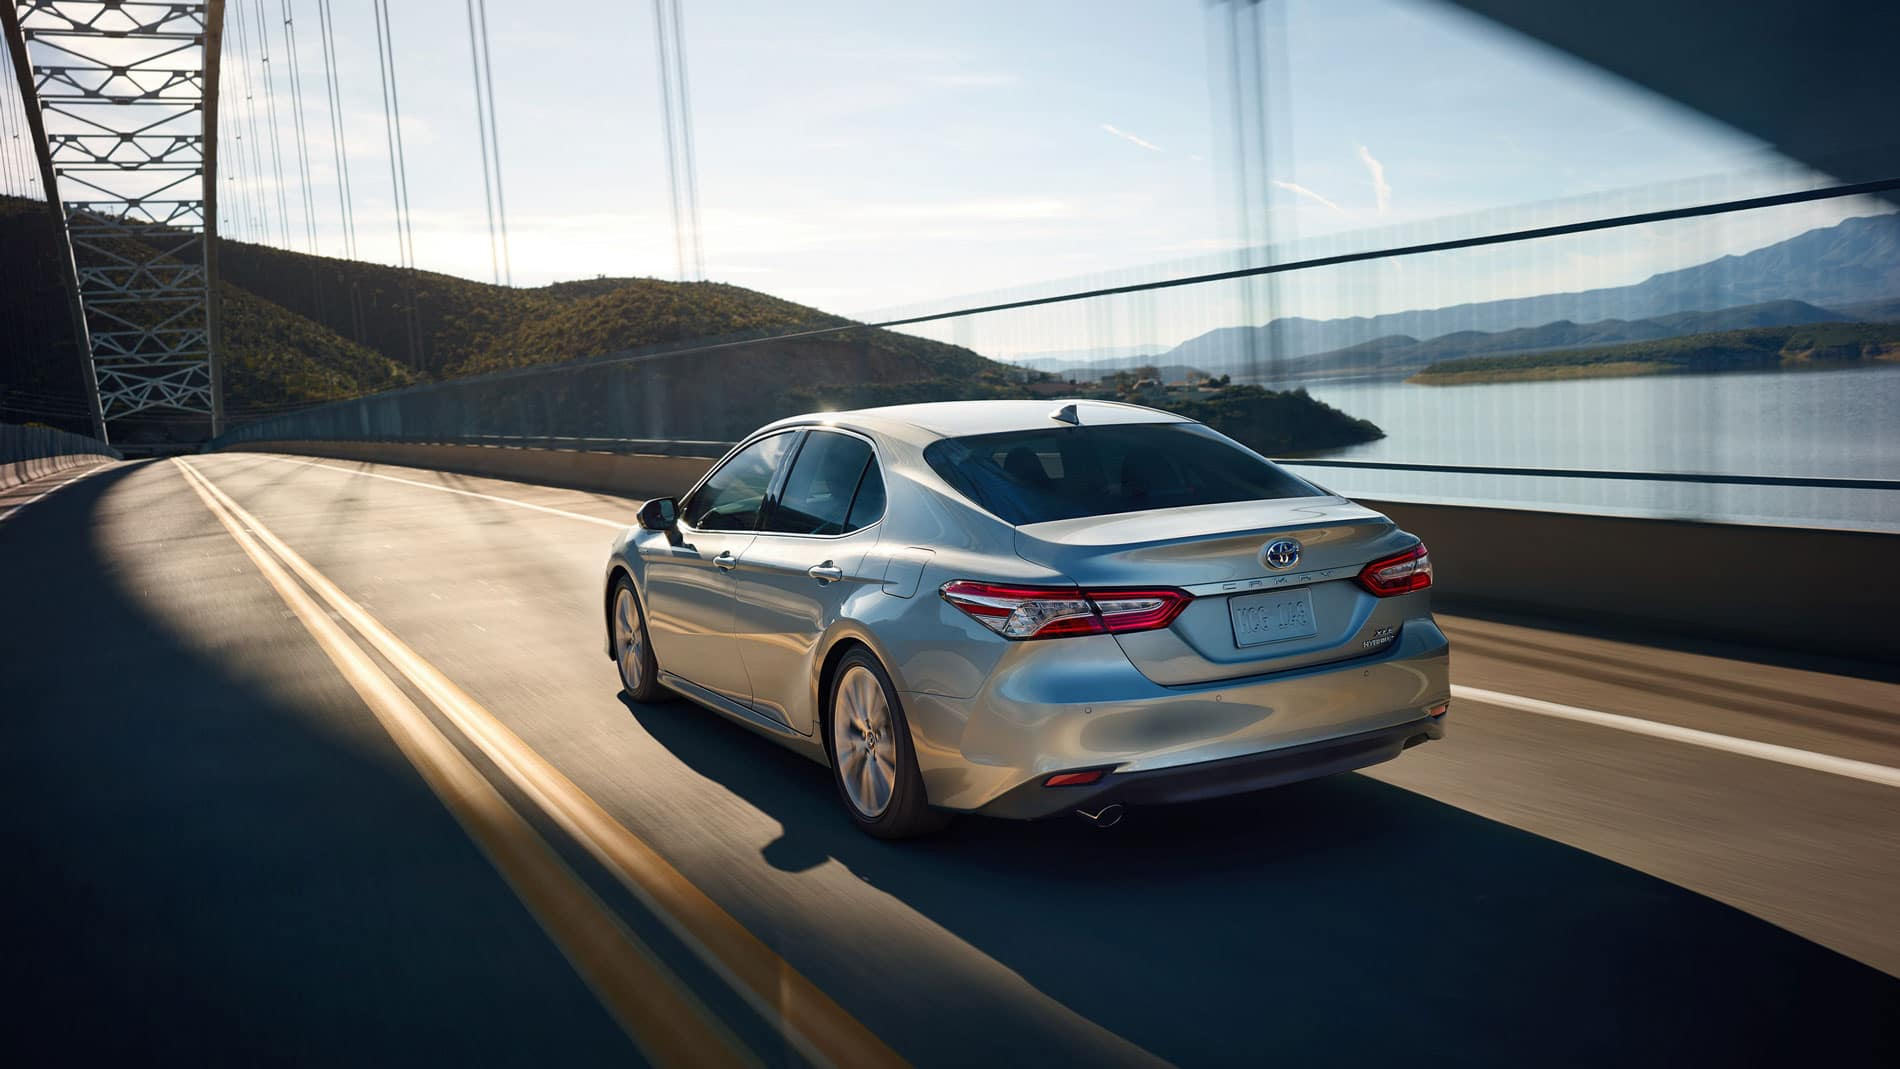 Chevy Malibu Vs  Toyota Camry: Midsize Sedan Shootout